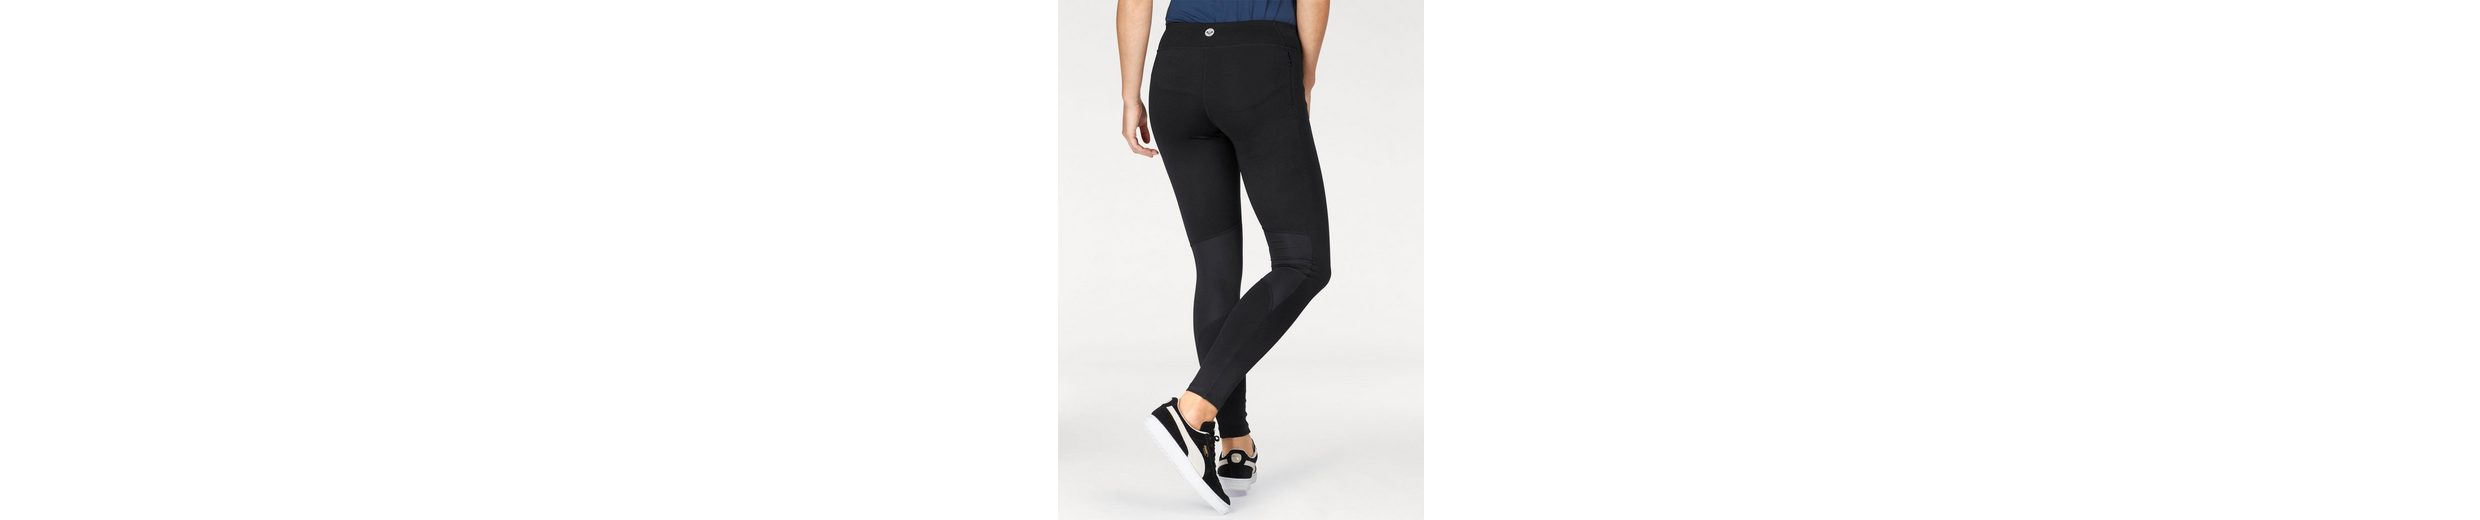 Roxy Leggings SPY GAME PANT Steckdose Exklusive 8DGCVb